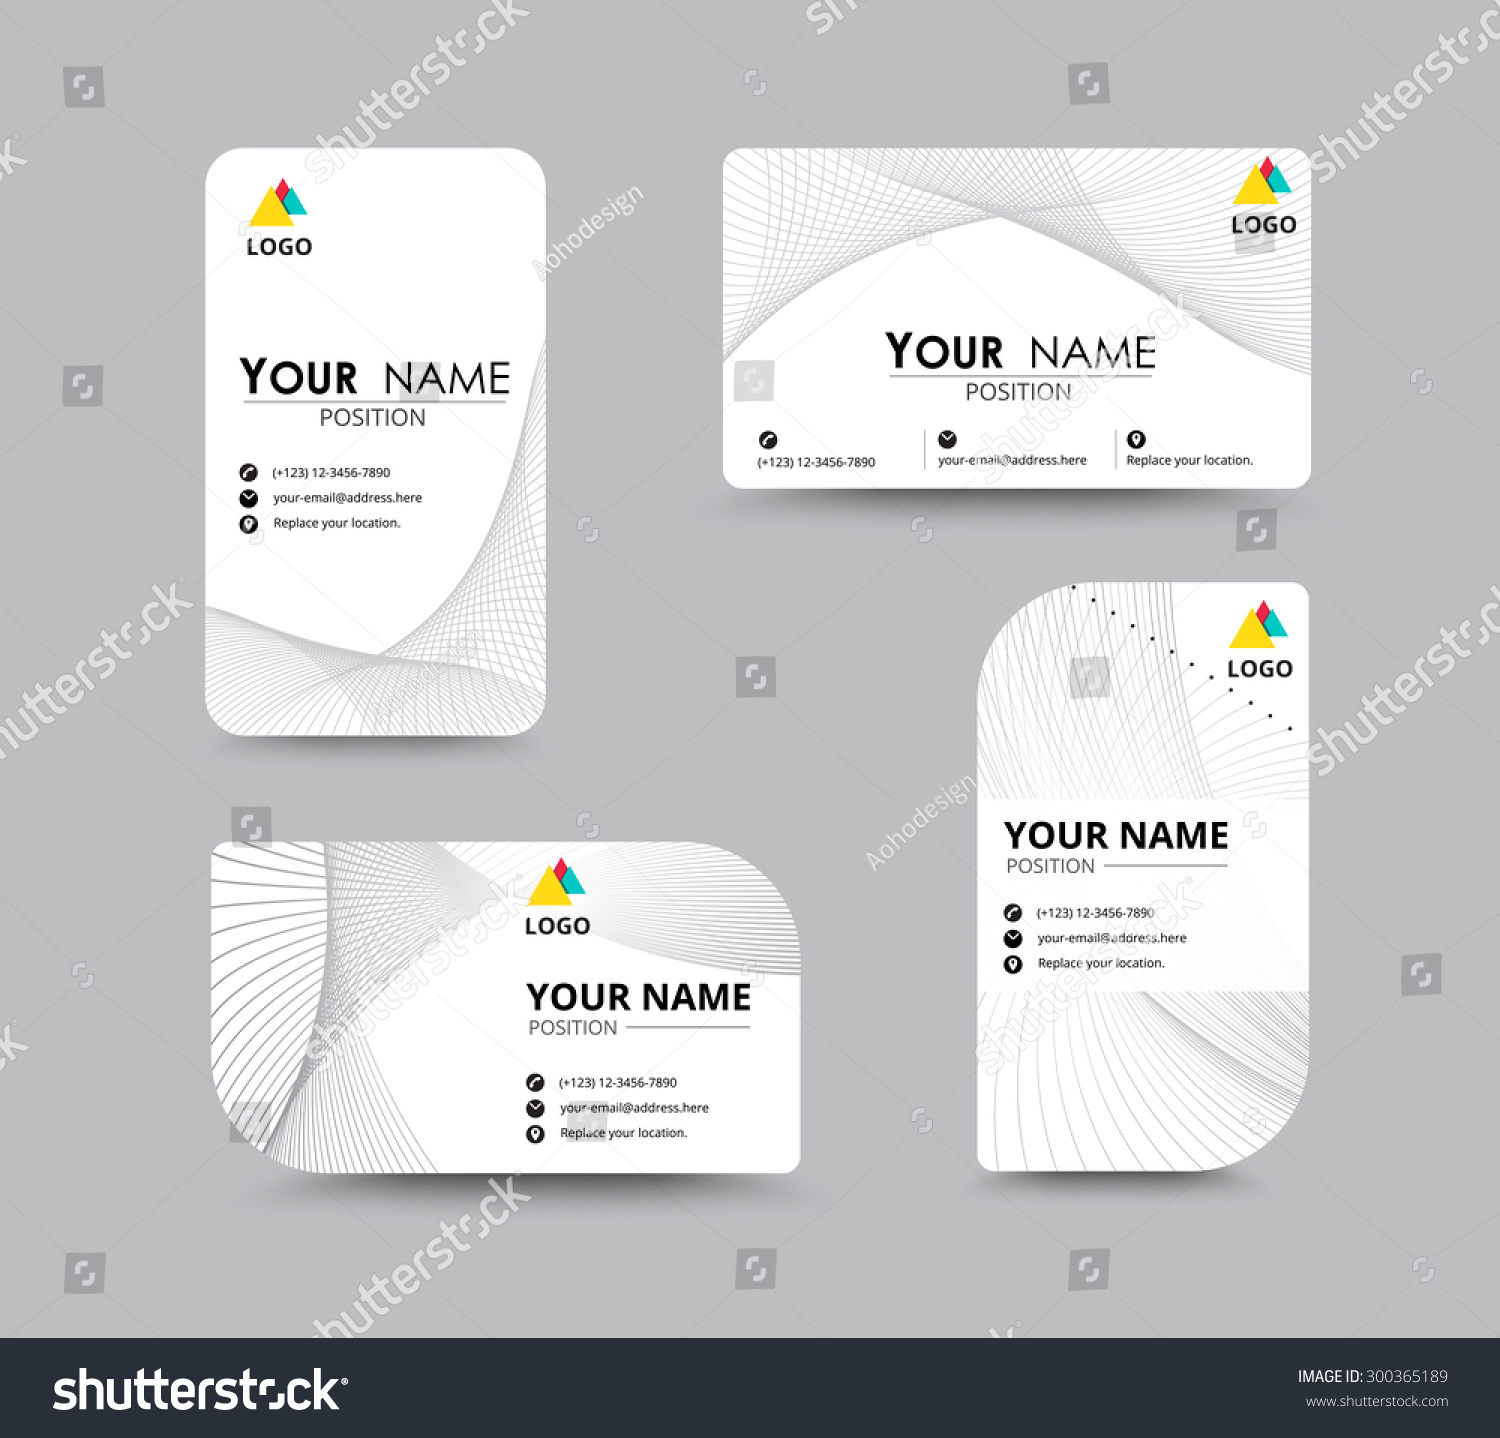 business contact card template design name stock vector